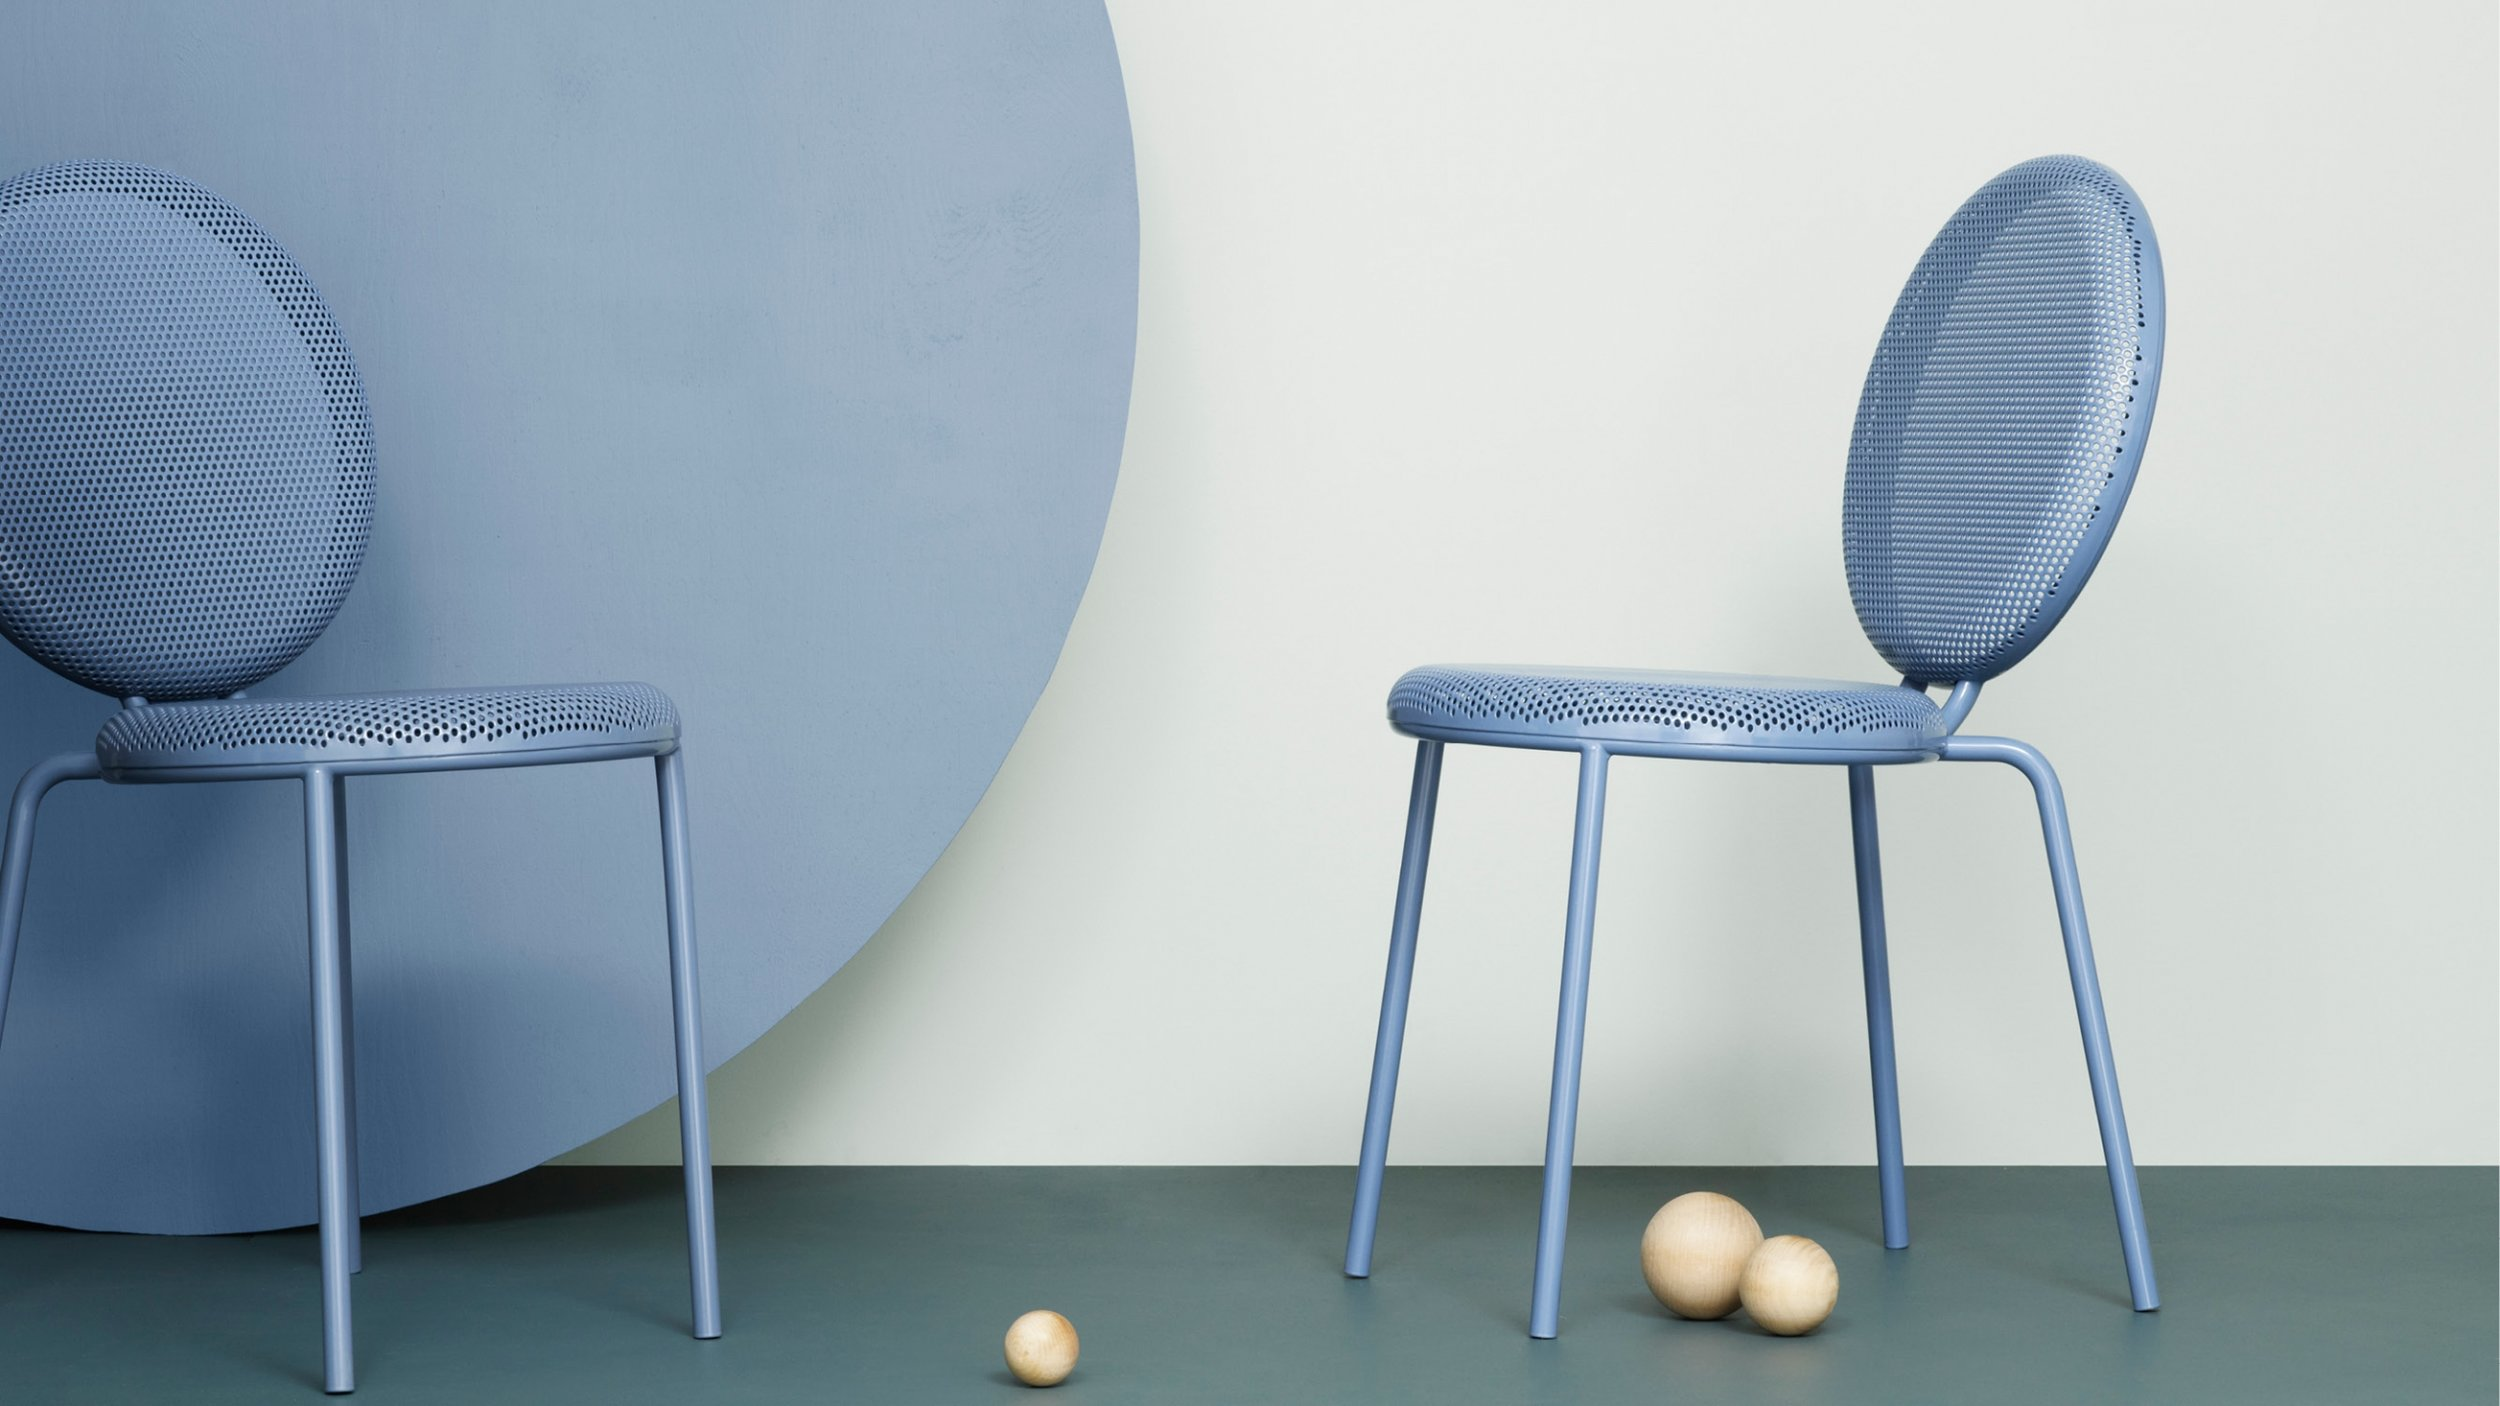 'Dimma' chair by Alexander Lervik for Tingest. The range also consists of a stool and table in the same perforated steel style.